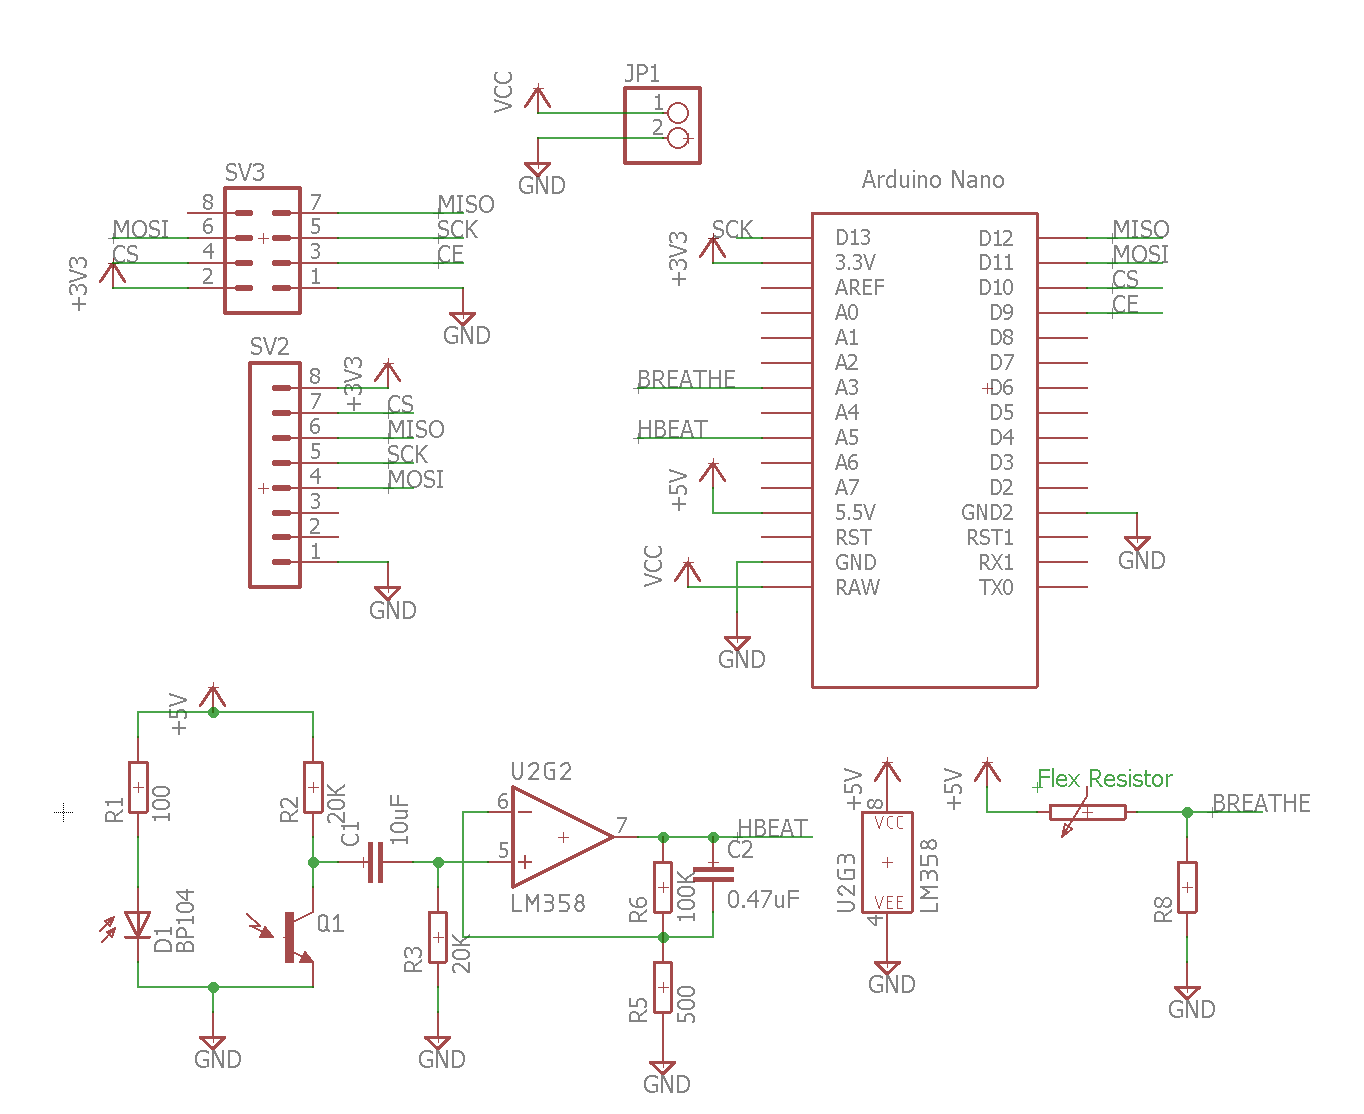 Ece 4760 Final Project 5 Volt Relay Circuit Diagram Schematics